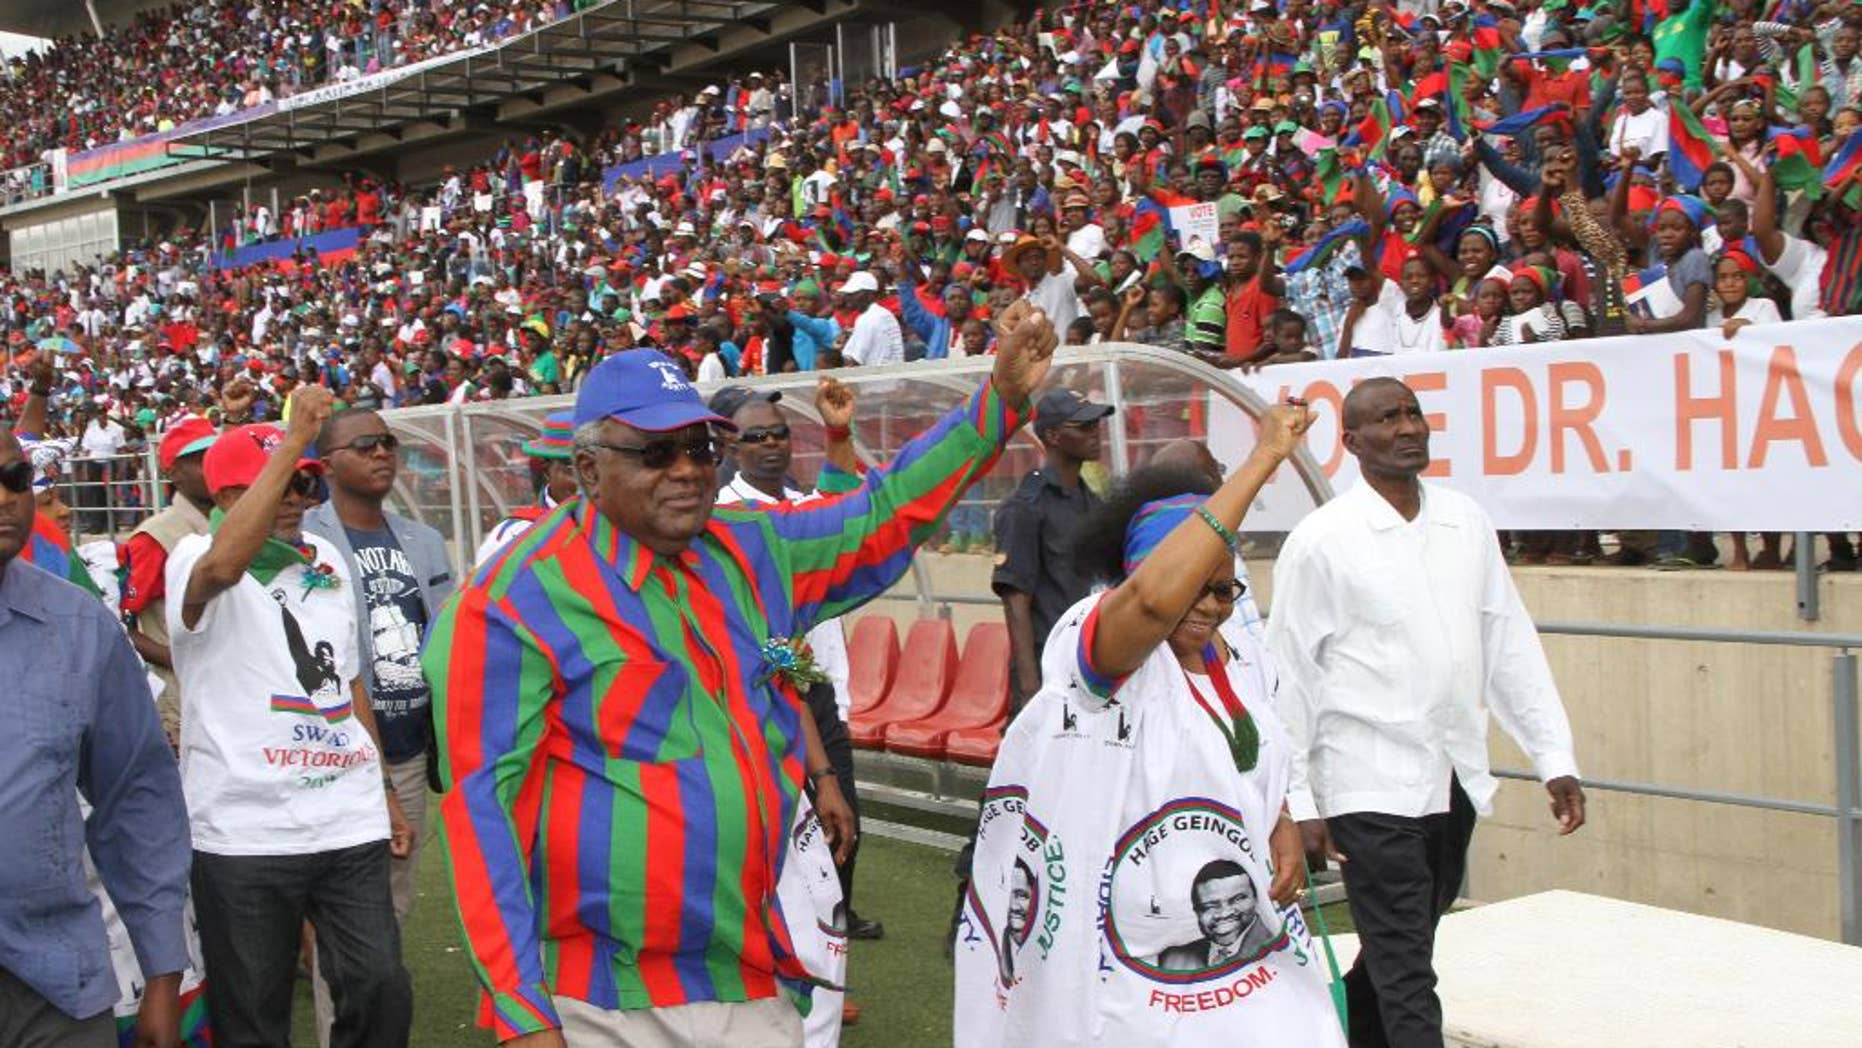 In this photo taken Saturday, Nov. 22, 2014, Namibian president Hifikepunye Pohamba, centre left, and his first lady, Penehupifo Pohamba, centre right, arrive at the Sam Nujoma Stadium in Windhoek, Namibia for an election rally.  Namibians go to the polls Nov. 28 to elect a new president and national assembly. (AP Photo/Joseph Nekaya, Namibian Press Association)